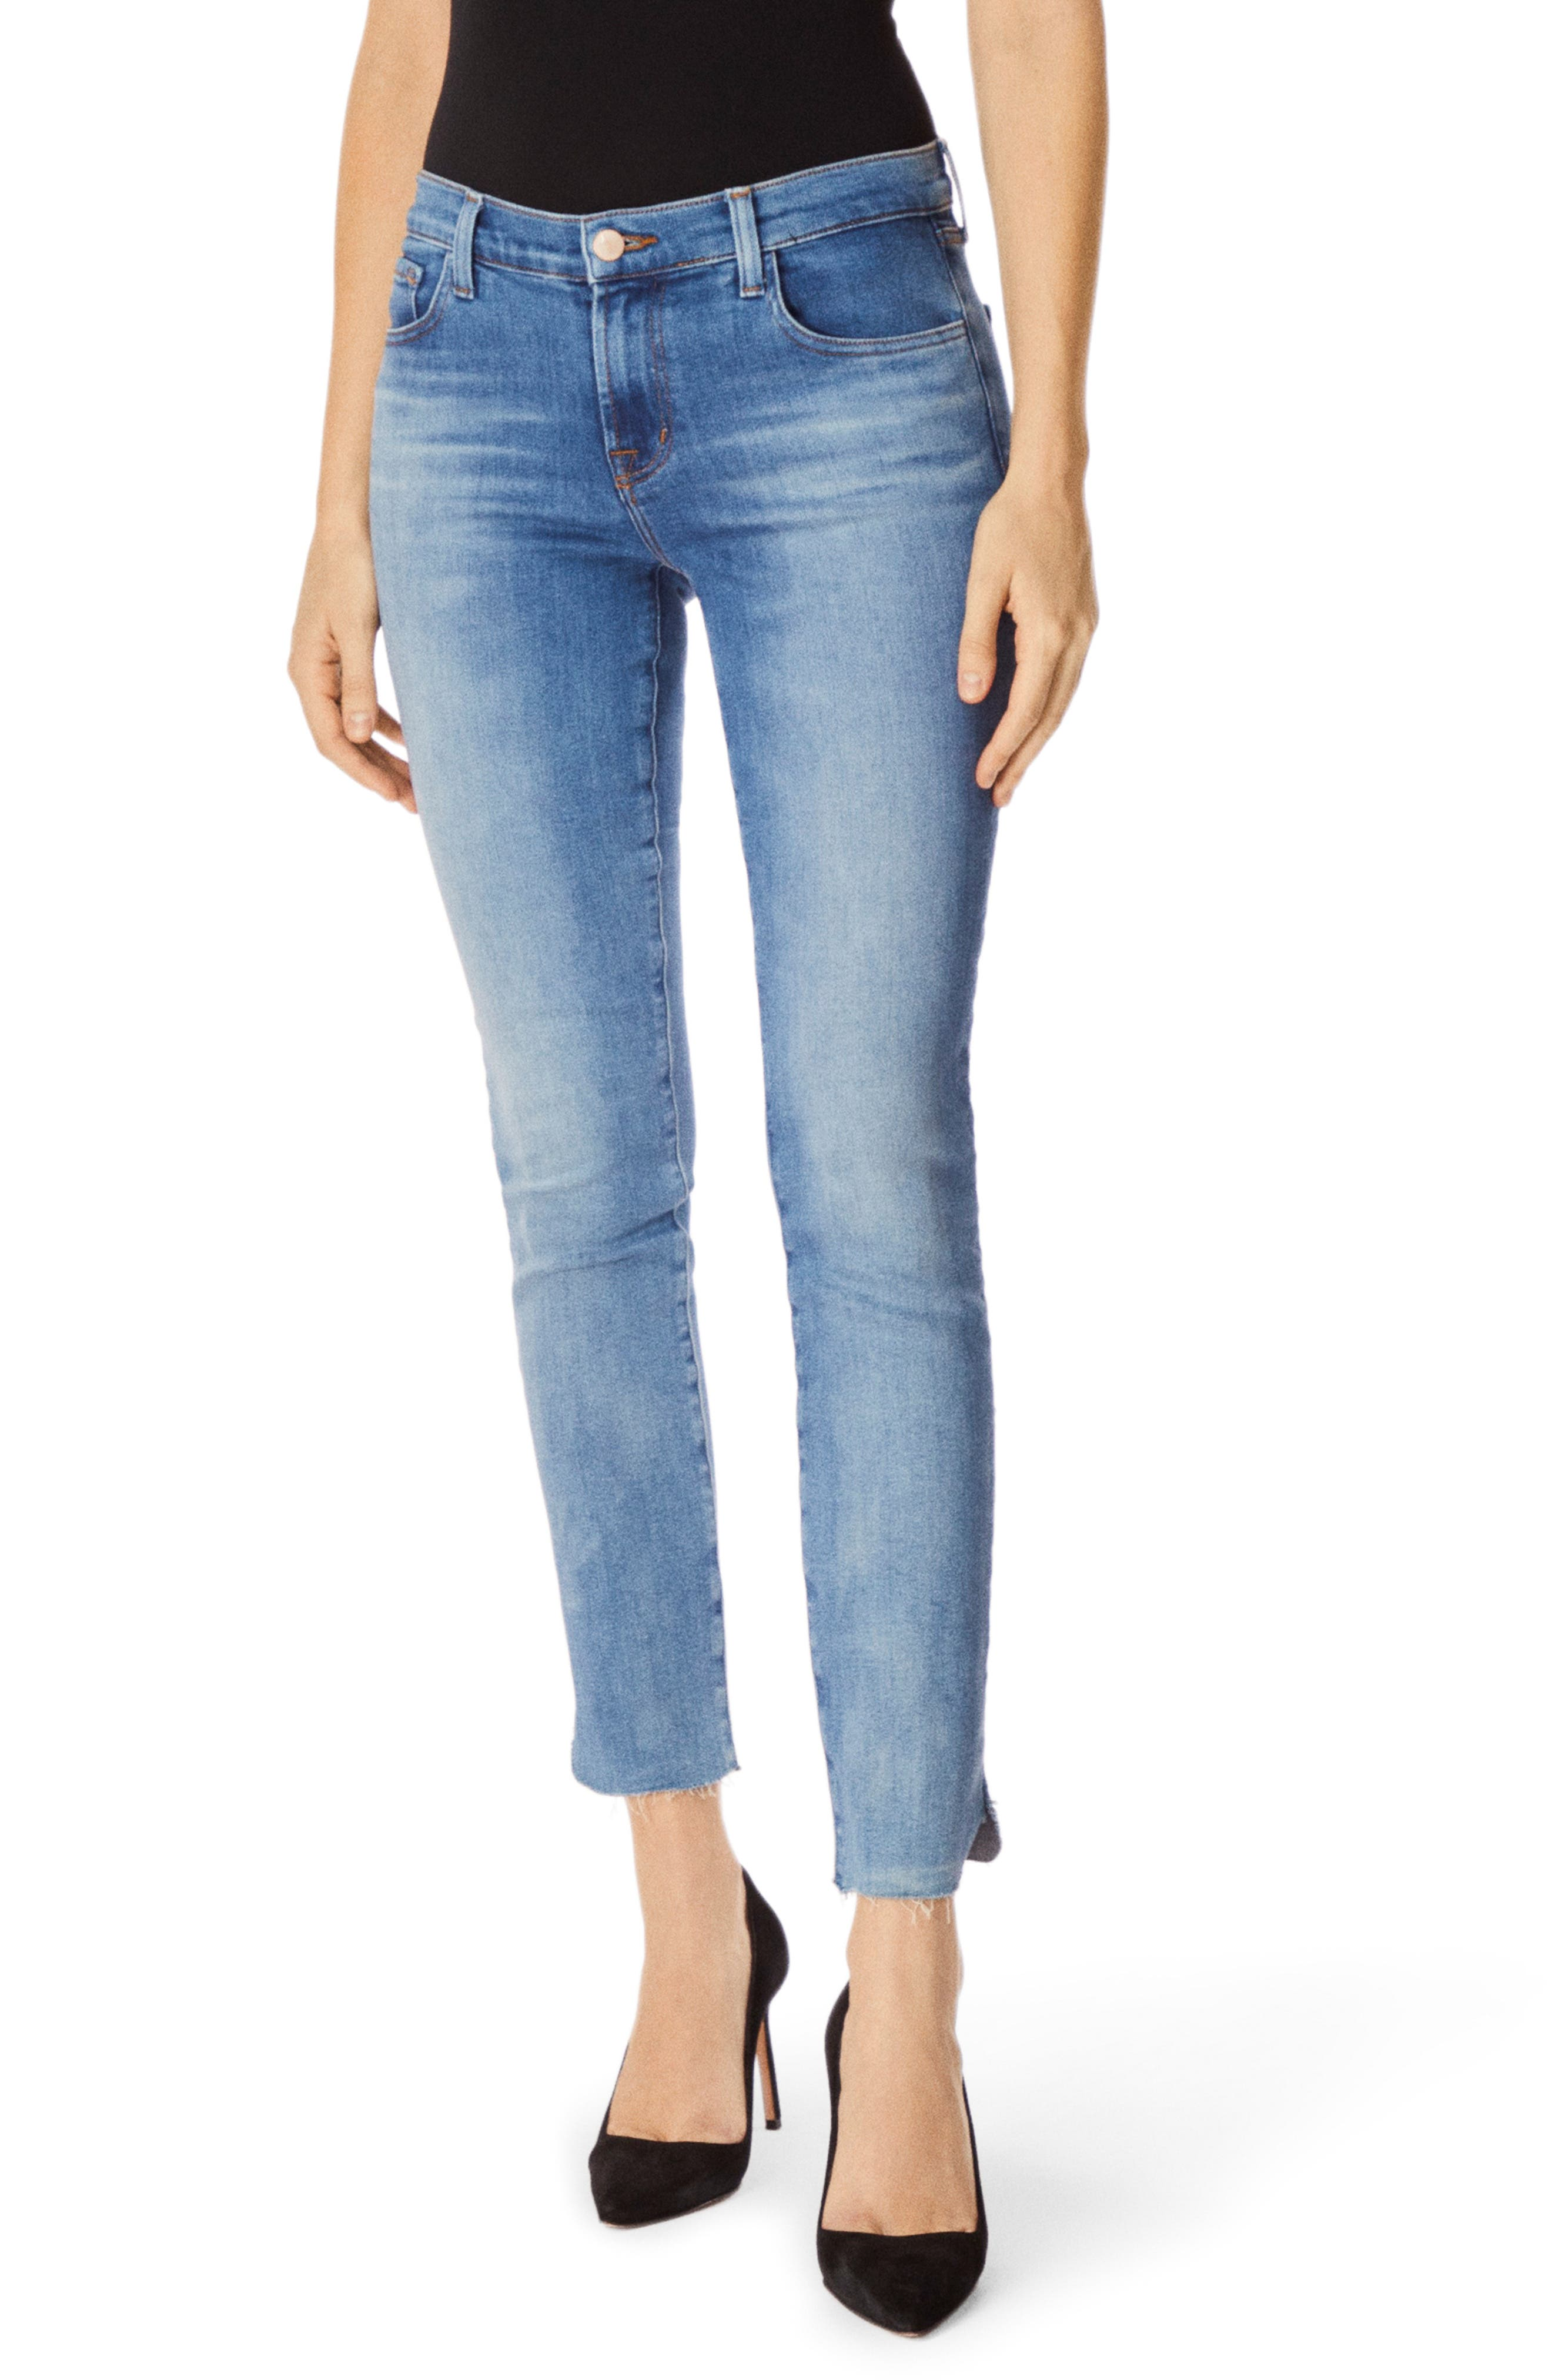 J BRAND, 811 Raw Hem Ankle Skinny Jeans, Main thumbnail 1, color, 400